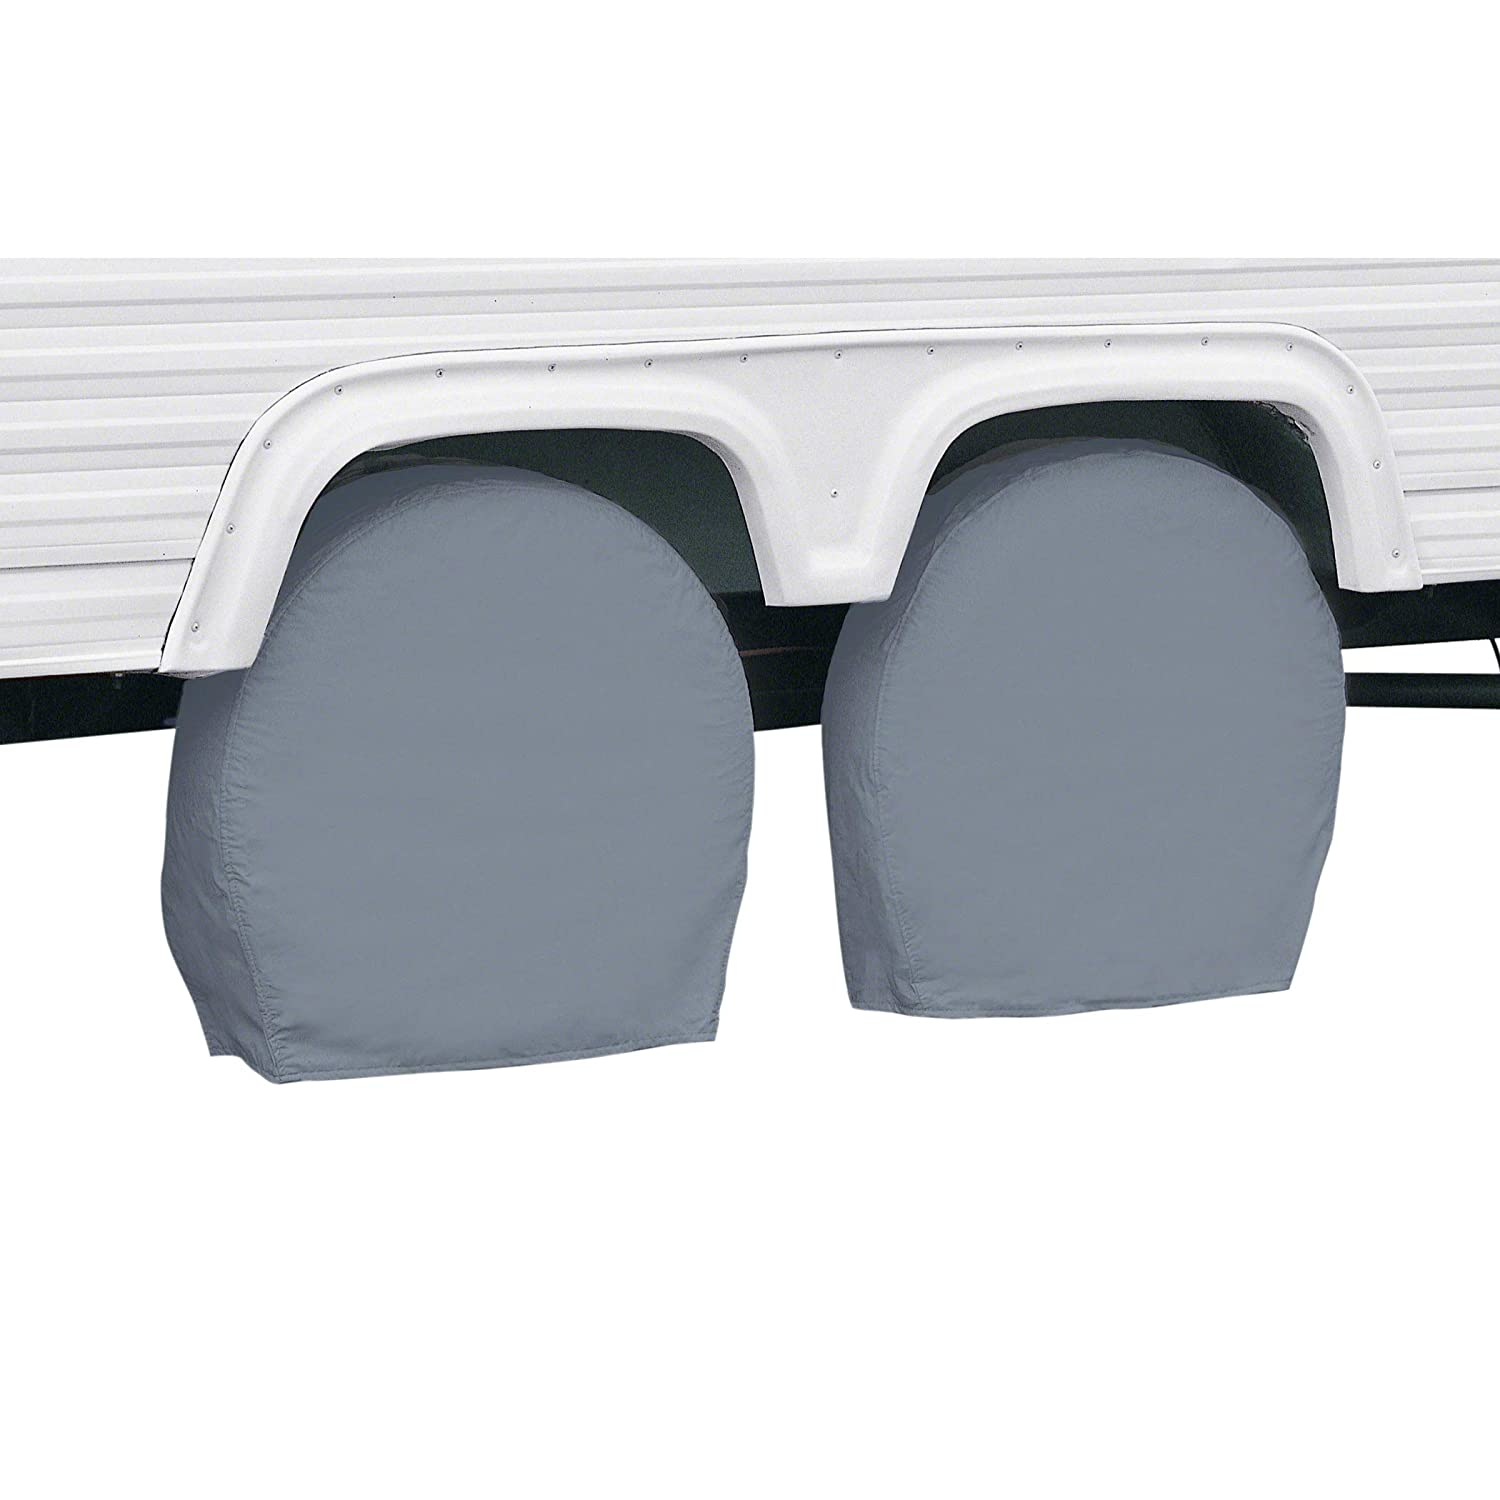 Classic Accessories OverDrive RV Wheel Cover